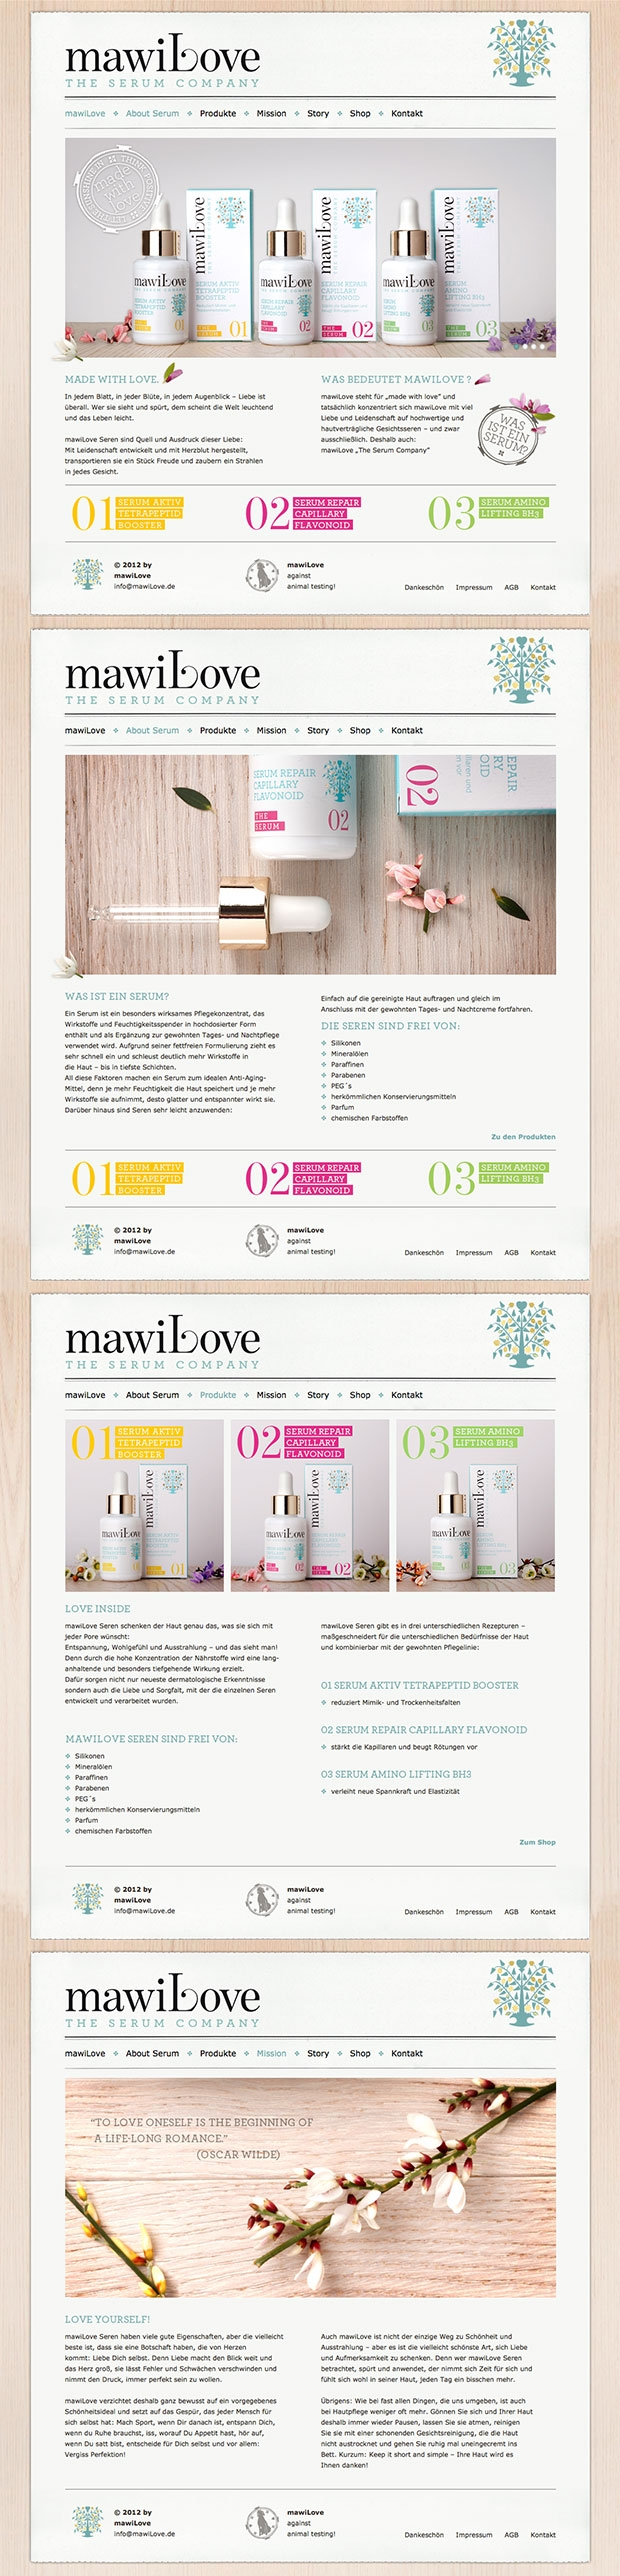 mawilove---the-serum-company